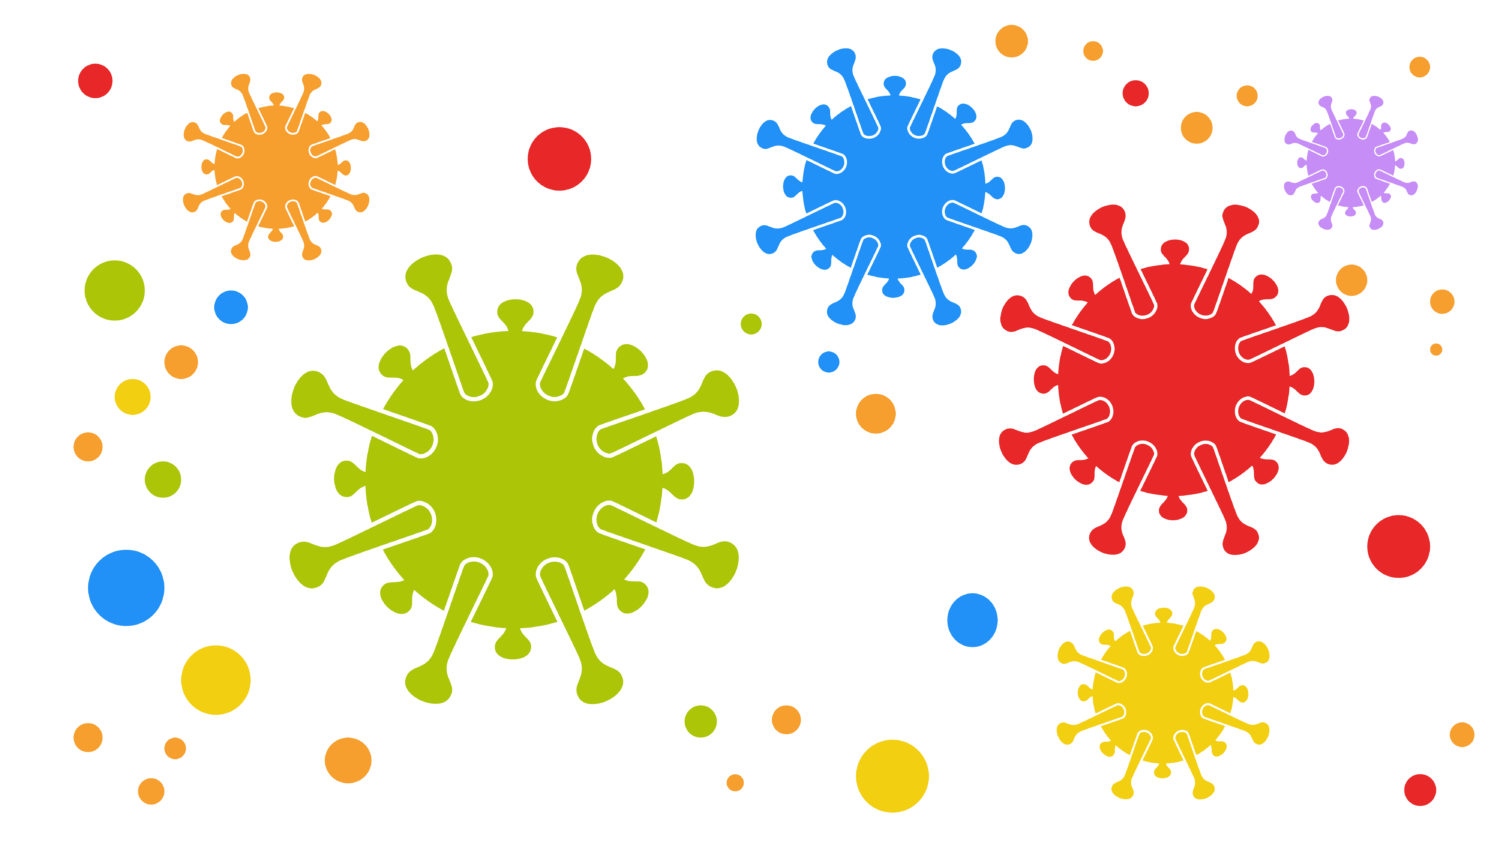 Free image from iXimus.de: Coronavirus, multicolored, colorful, red, blue, green #0000123